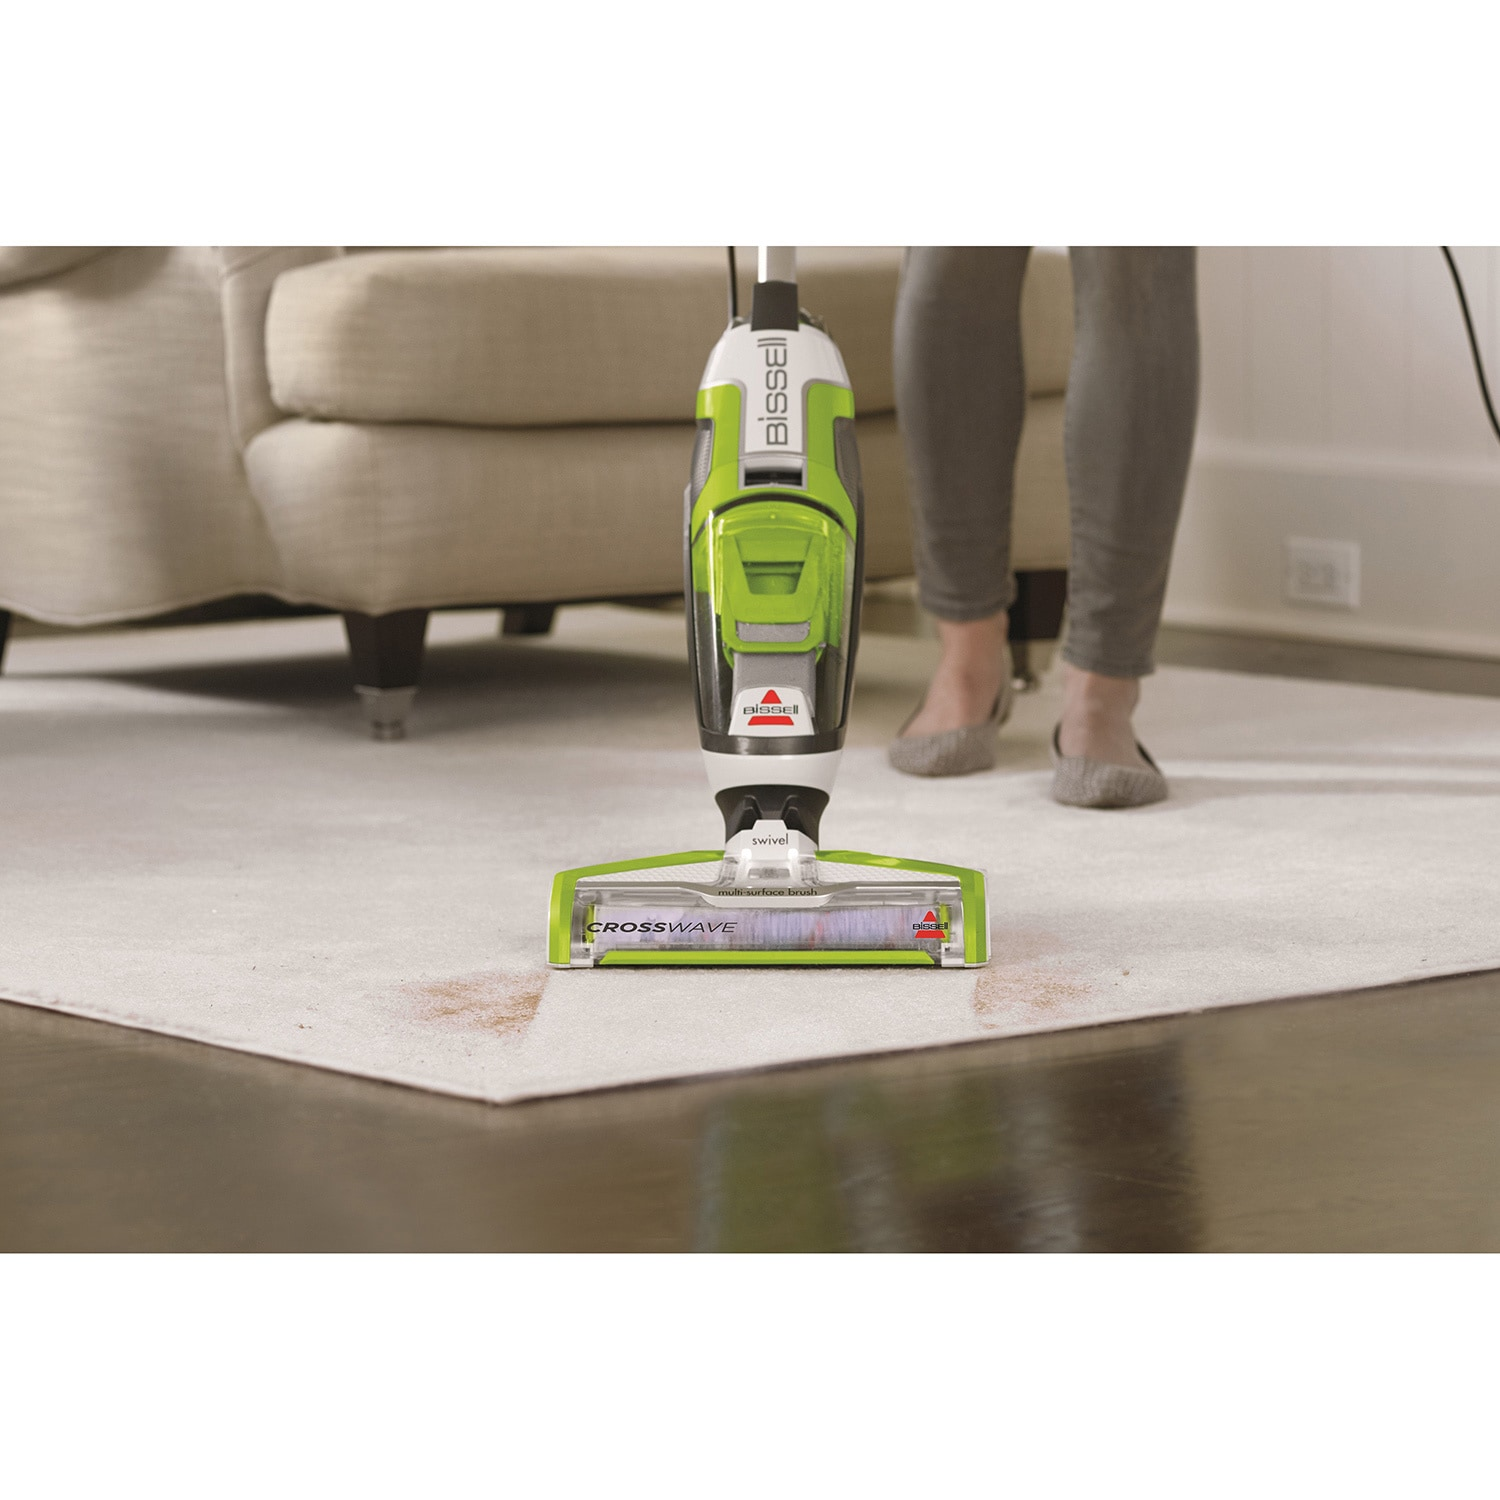 Bissell 1785 crosswave all in one wet dry vacuum free shipping bissell 1785 crosswave all in one wet dry vacuum free shipping today overstock 20440059 dailygadgetfo Image collections